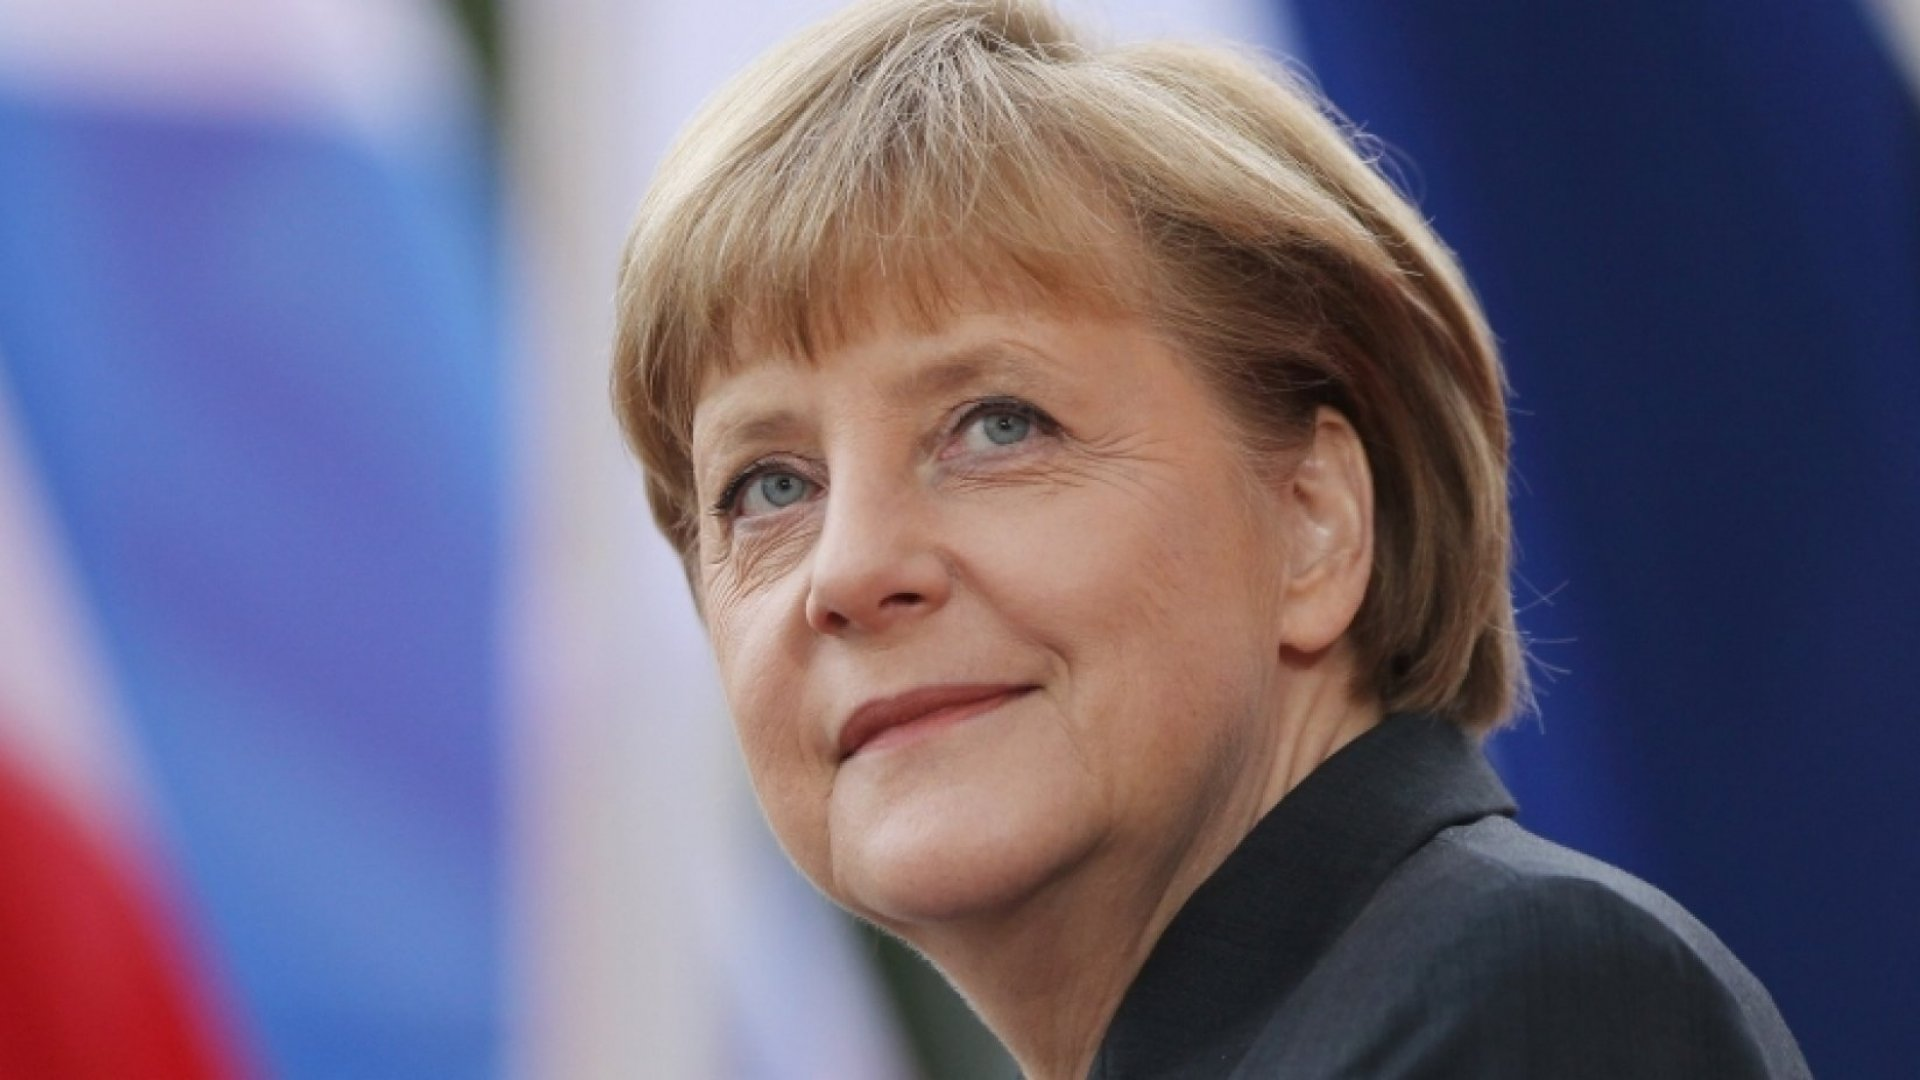 11 Really Surprising Things You Didn't Know About Angela Merkel